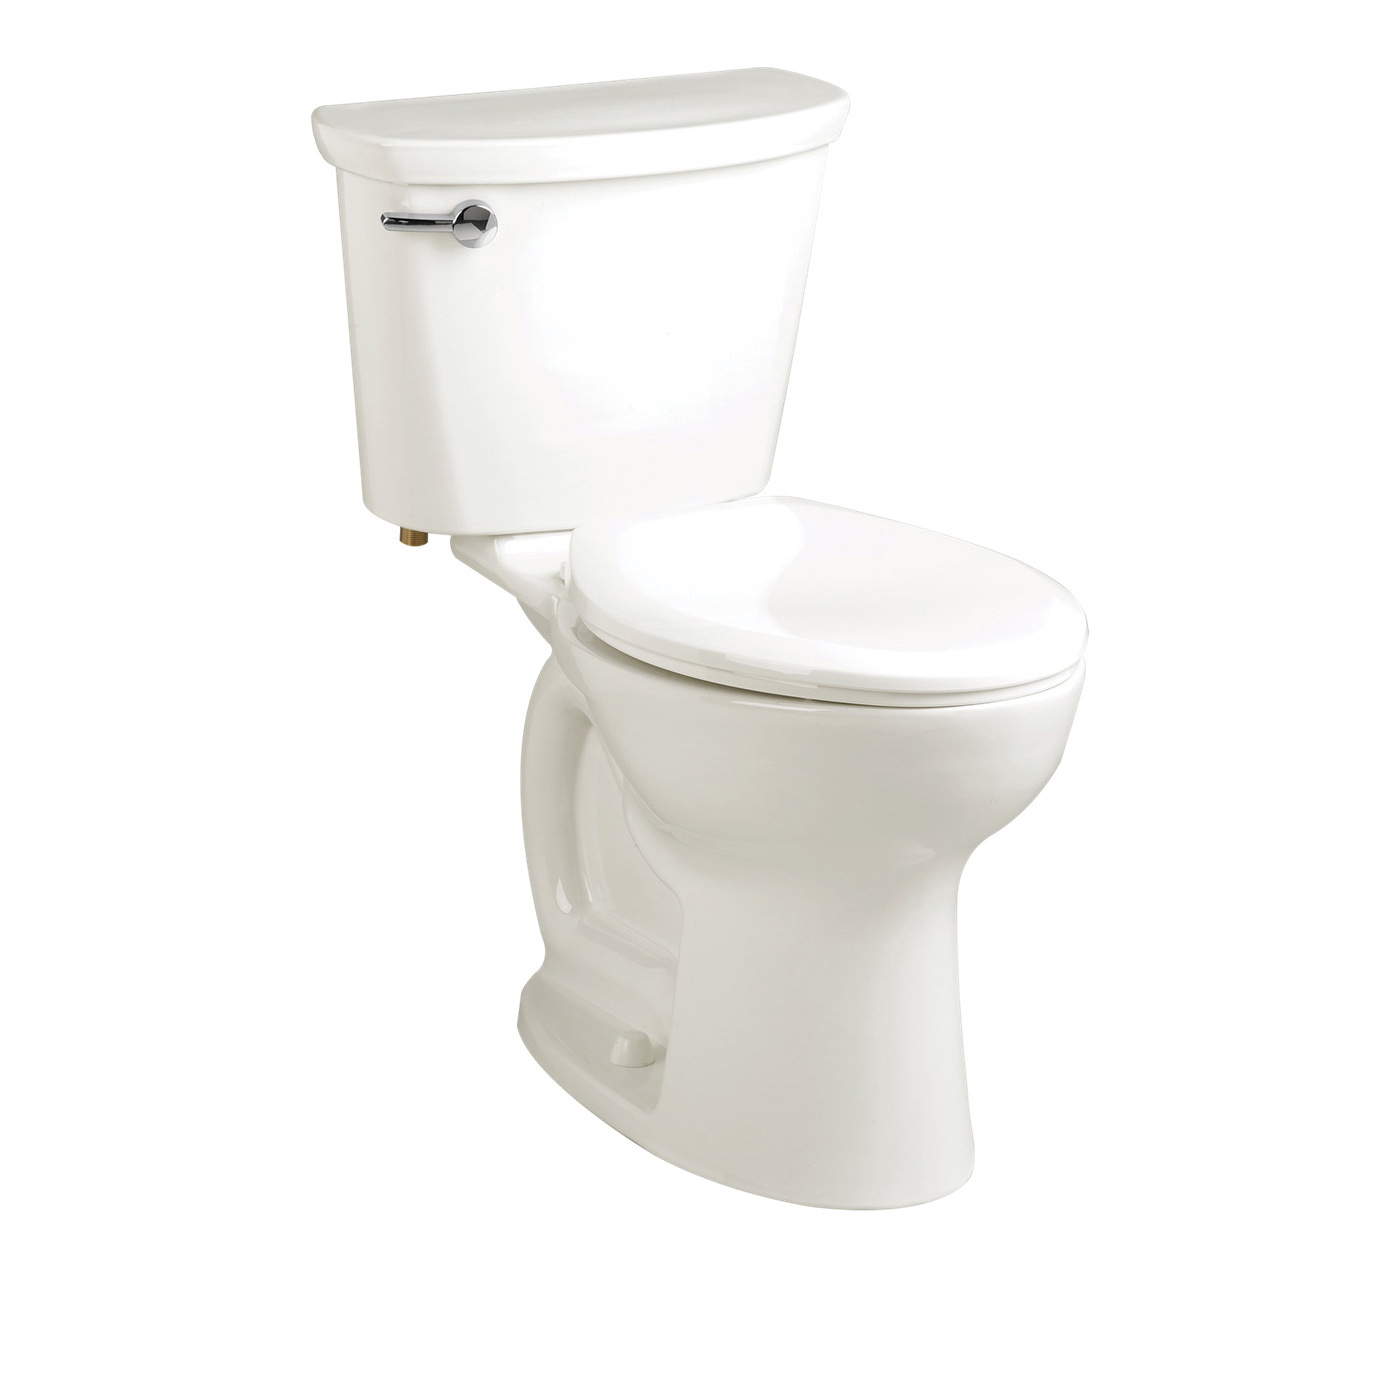 American Standard 215FC104.020 Cadet® Pro™ Right Height™ 2-Piece Toilet, Elongated Bowl, 16-1/2 in H Rim, 14 in Rough-In, 1.28 gpf Flush Rate, White, Import